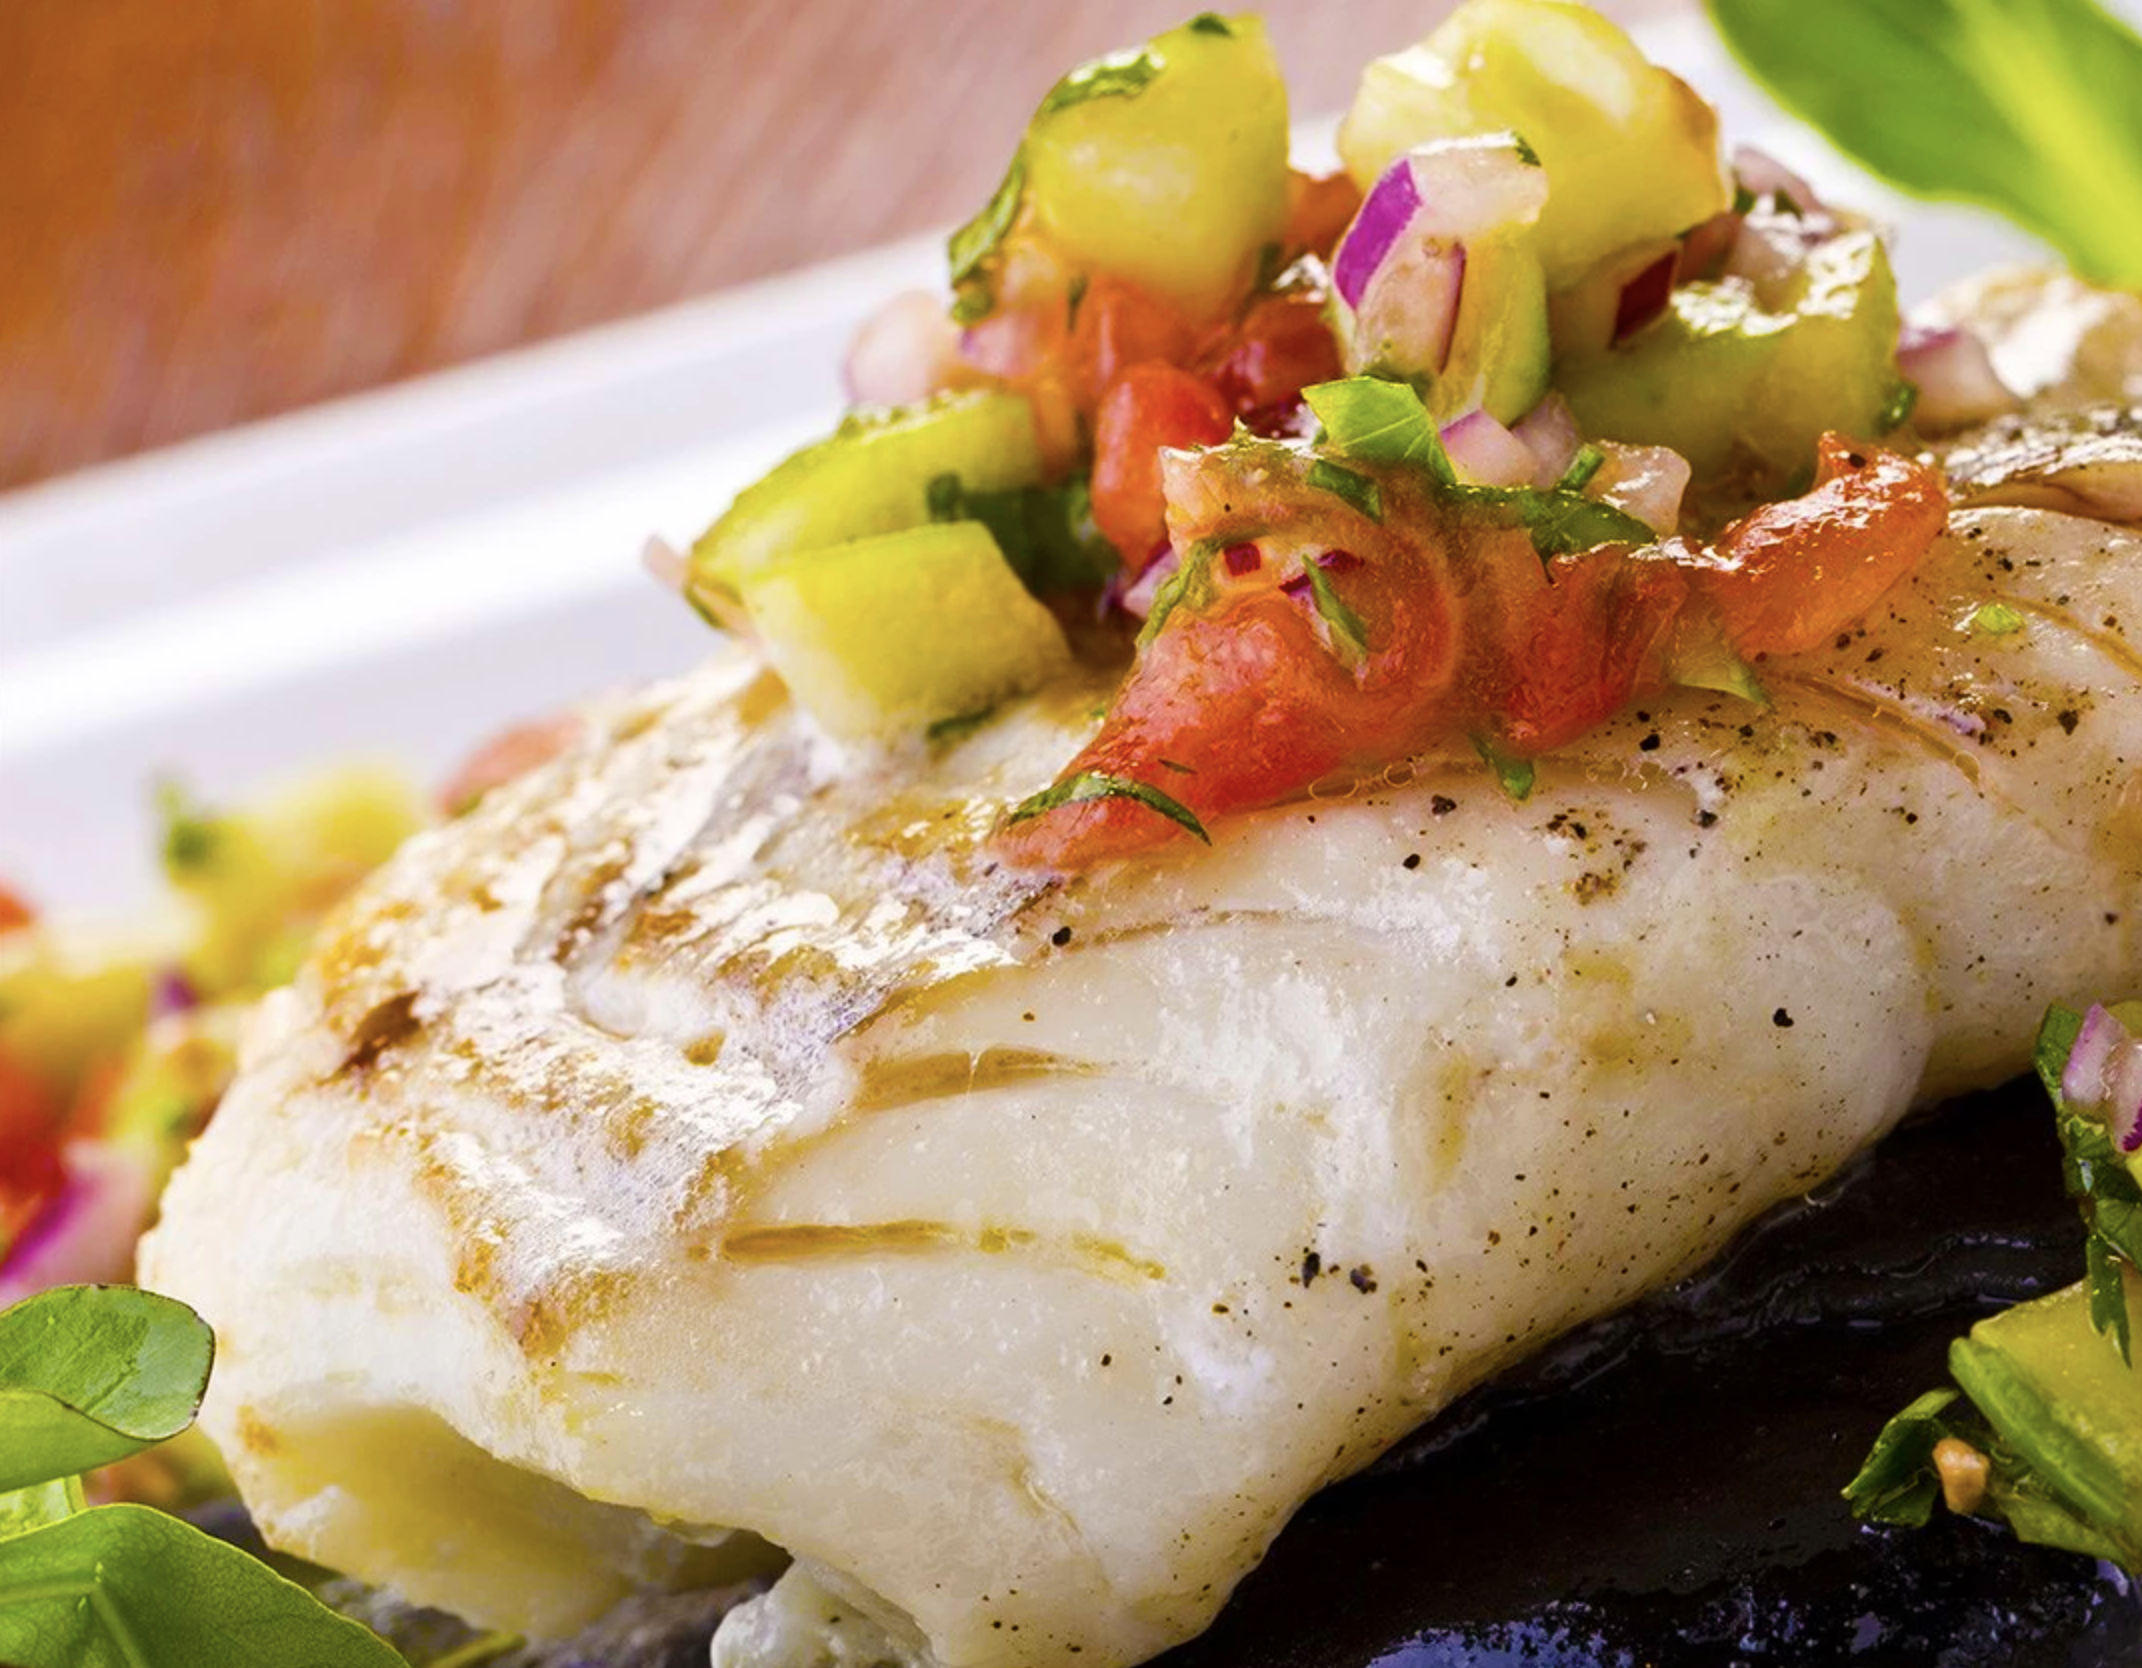 Baked Cod with Avocado Salsa